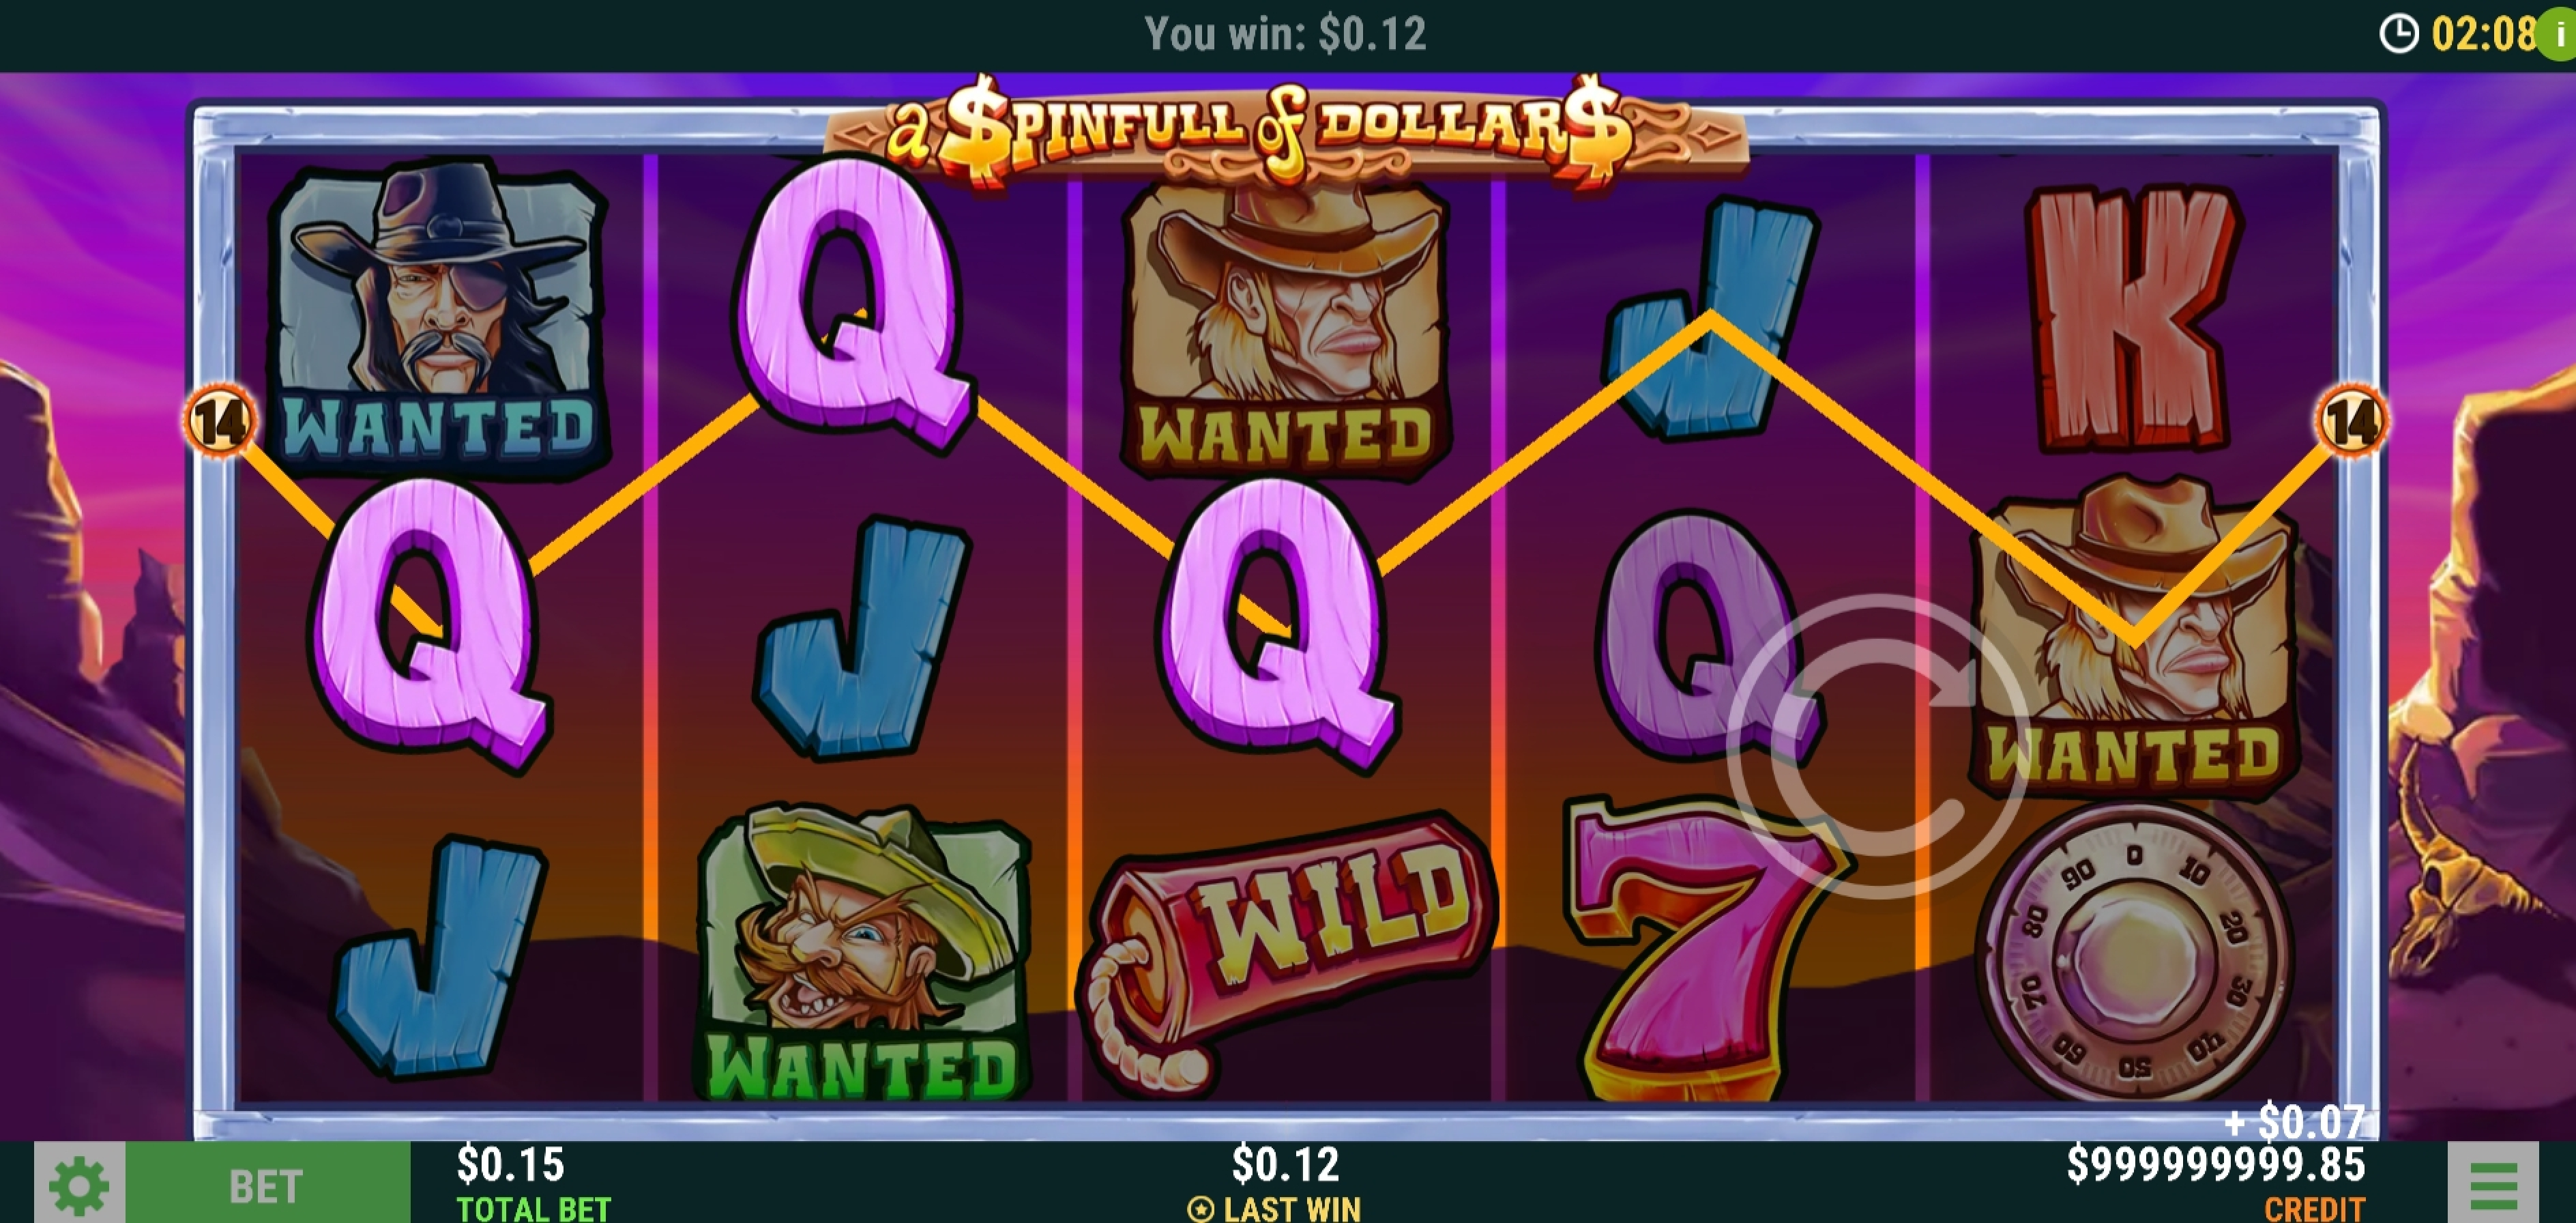 Win Money in A Spinfull of Dollars Free Slot Game by Slot Factory